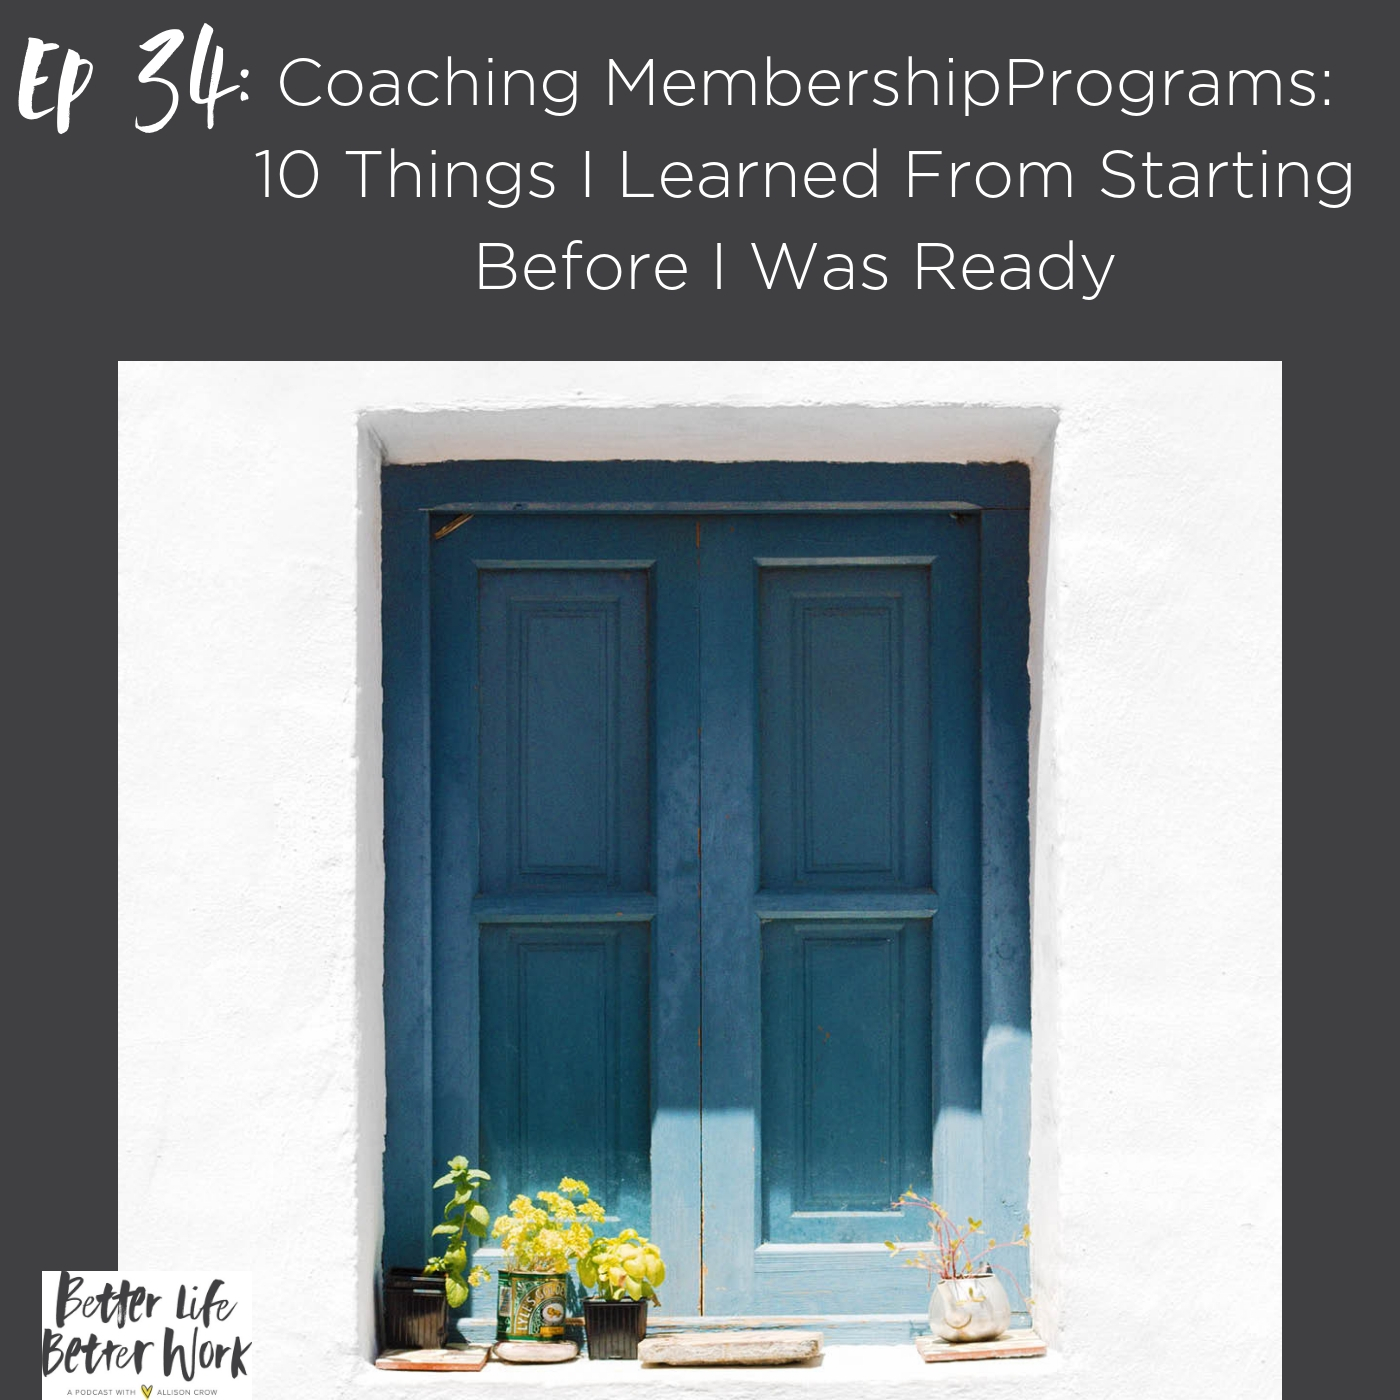 Coaching Memberships: 10 Things I Learned By Starting Before I Was Ready Image